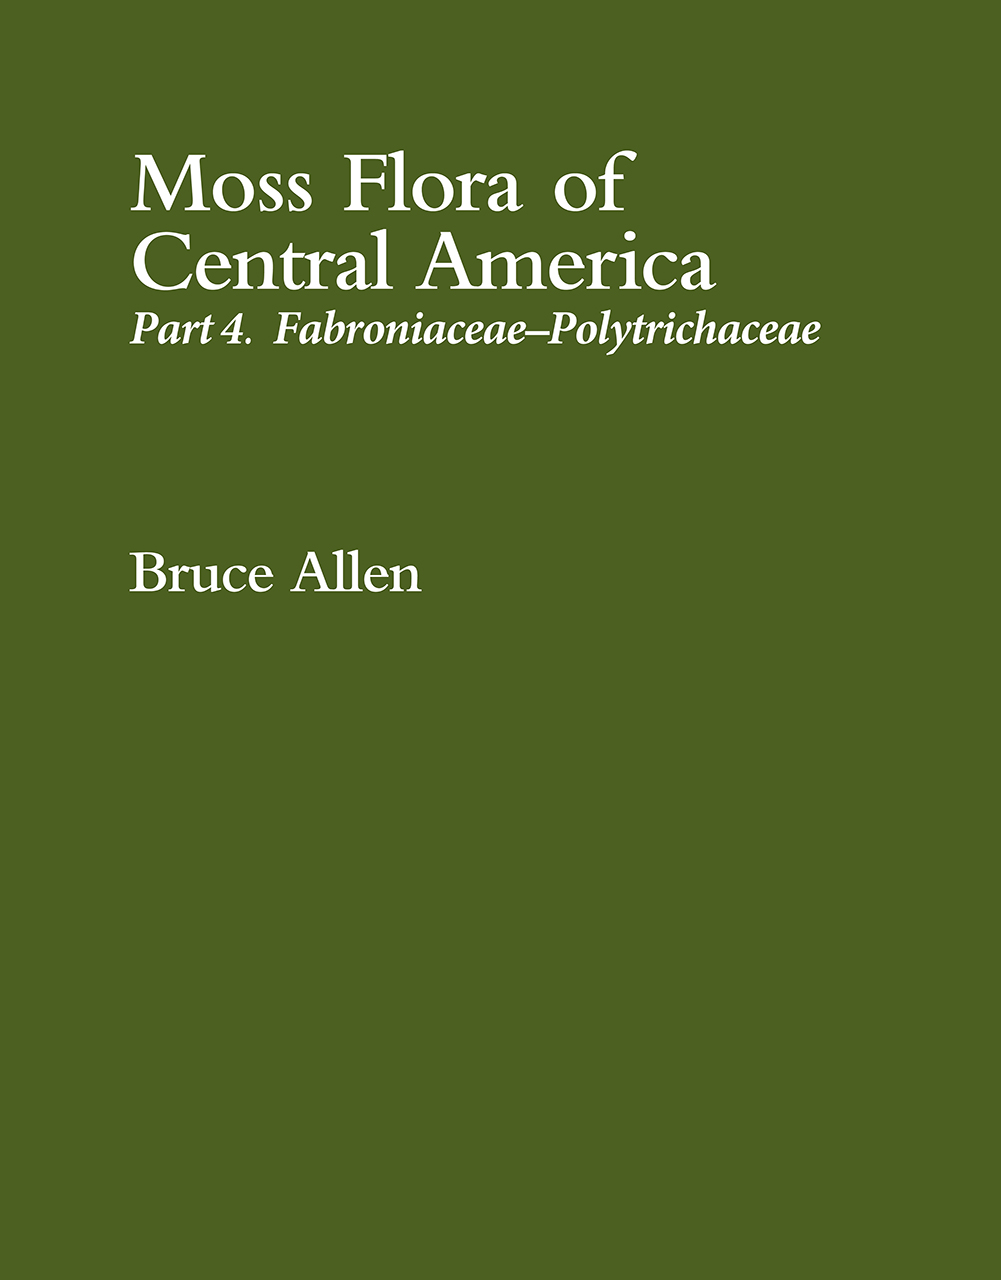 Moss Flora of Central America